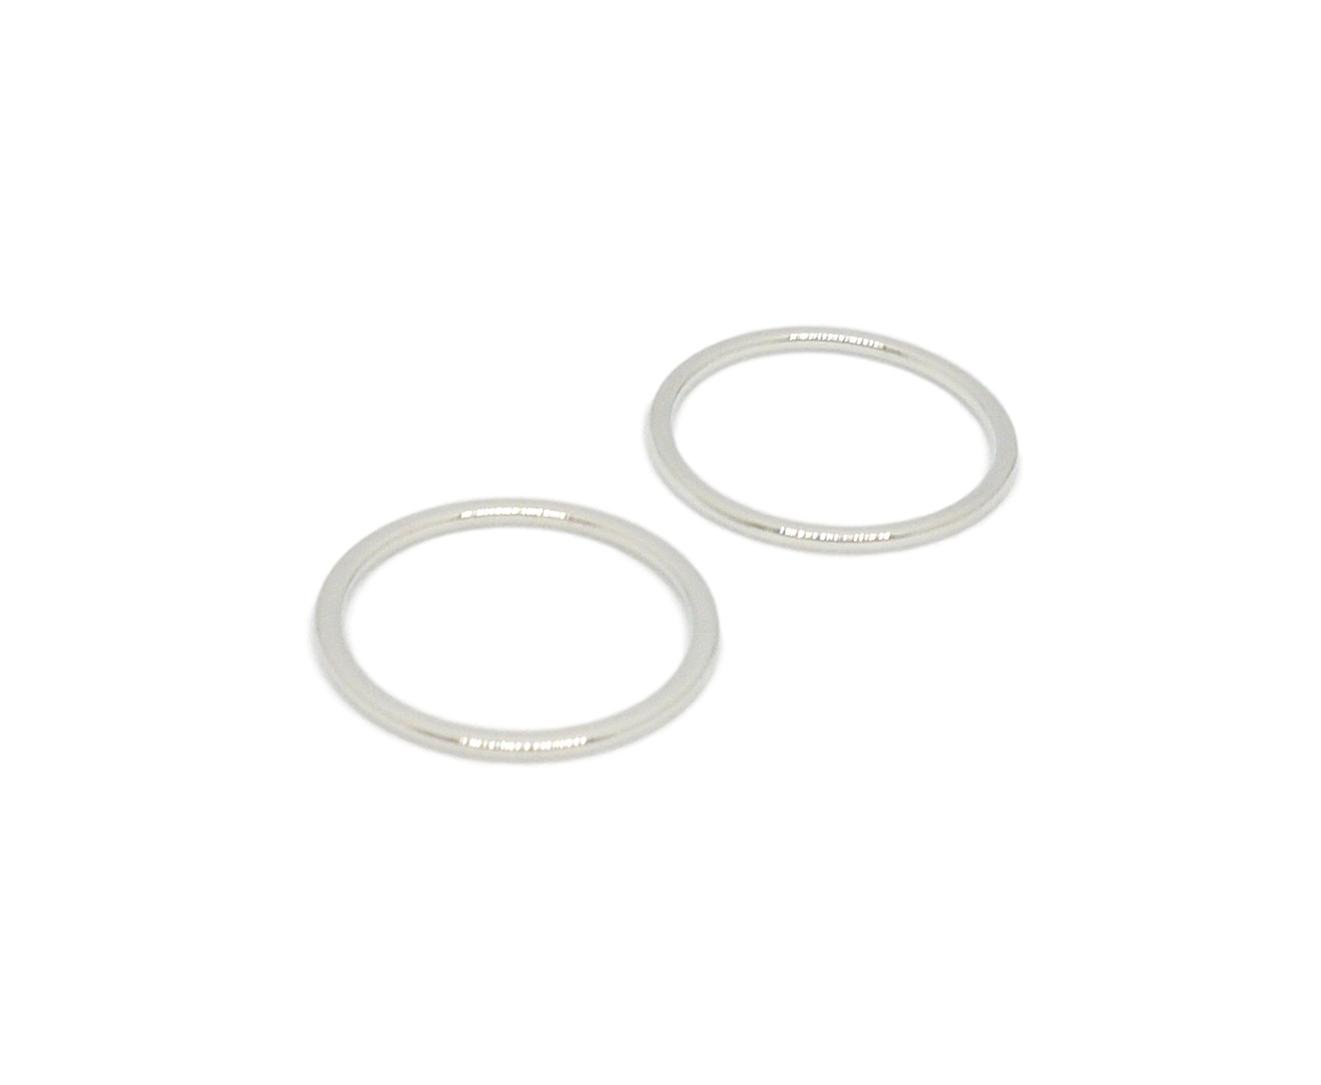 Porcelynne Silver Metal Alloy Replacement Bra Strap Ring - 1'' (25mm) Opening - 50 Pairs (100 Pieces) by Porcelynne